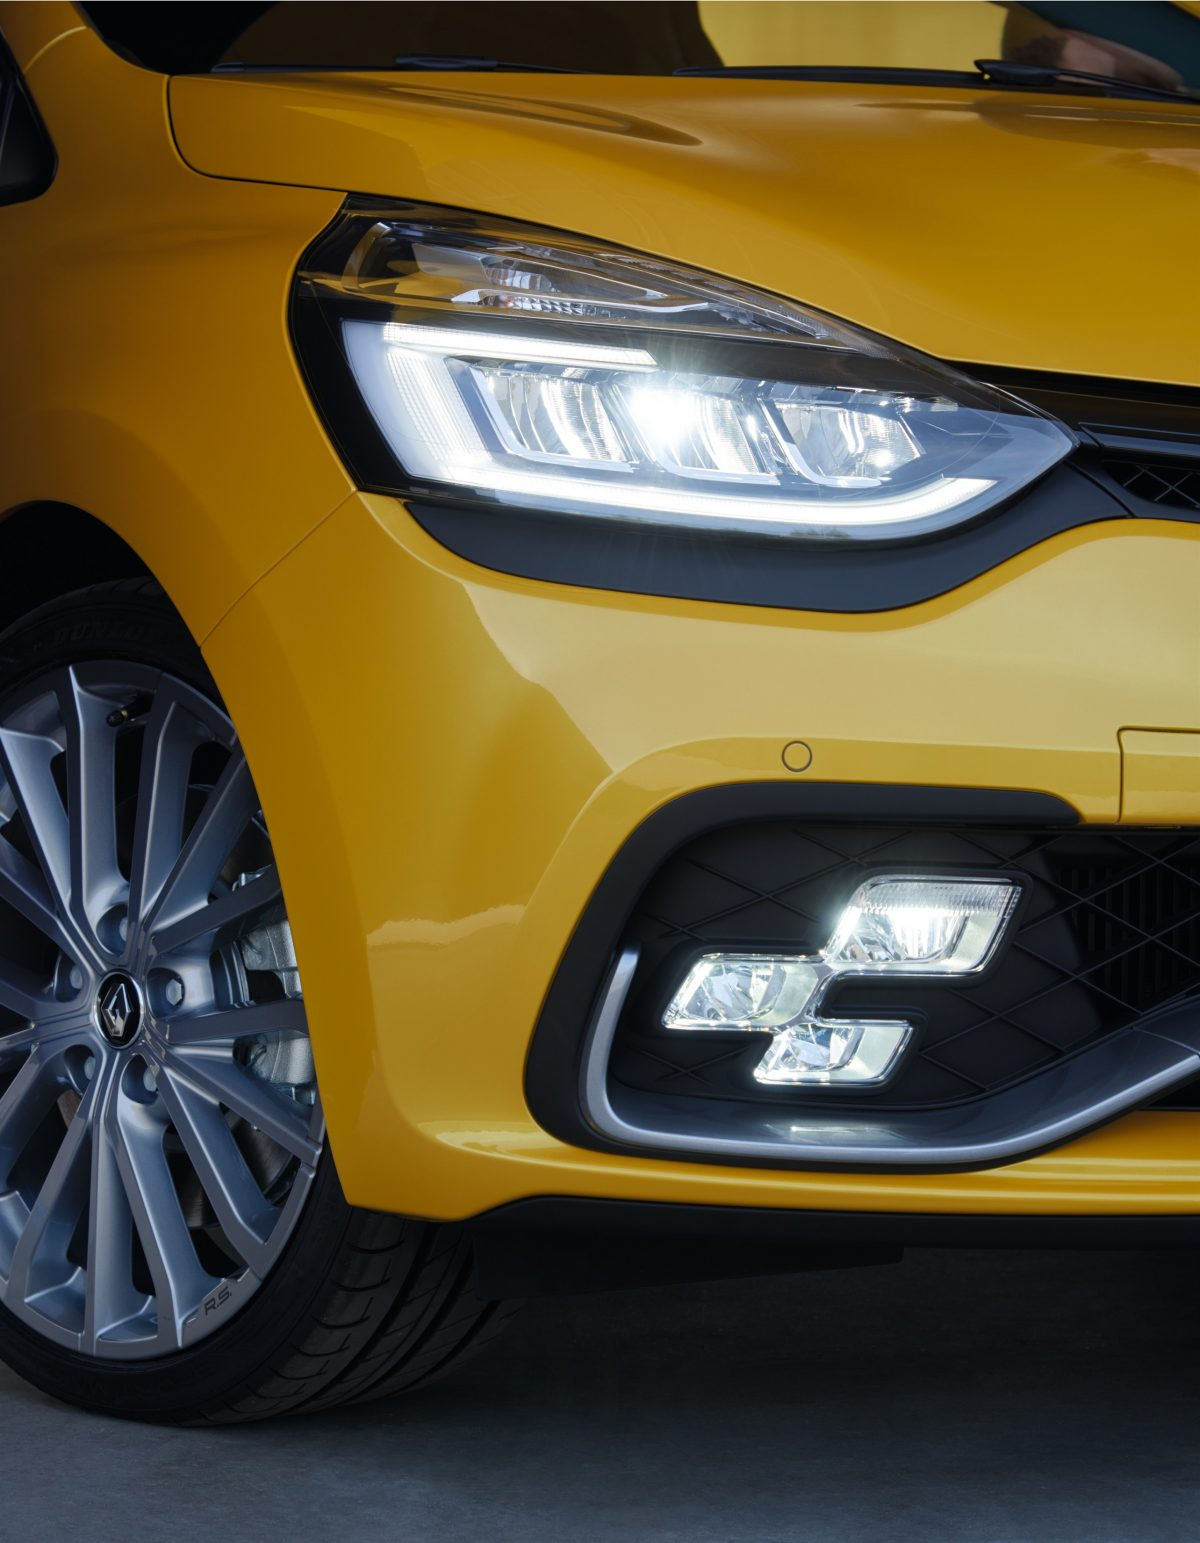 facelifted 2017 renaultsport clio r s revealed. Black Bedroom Furniture Sets. Home Design Ideas